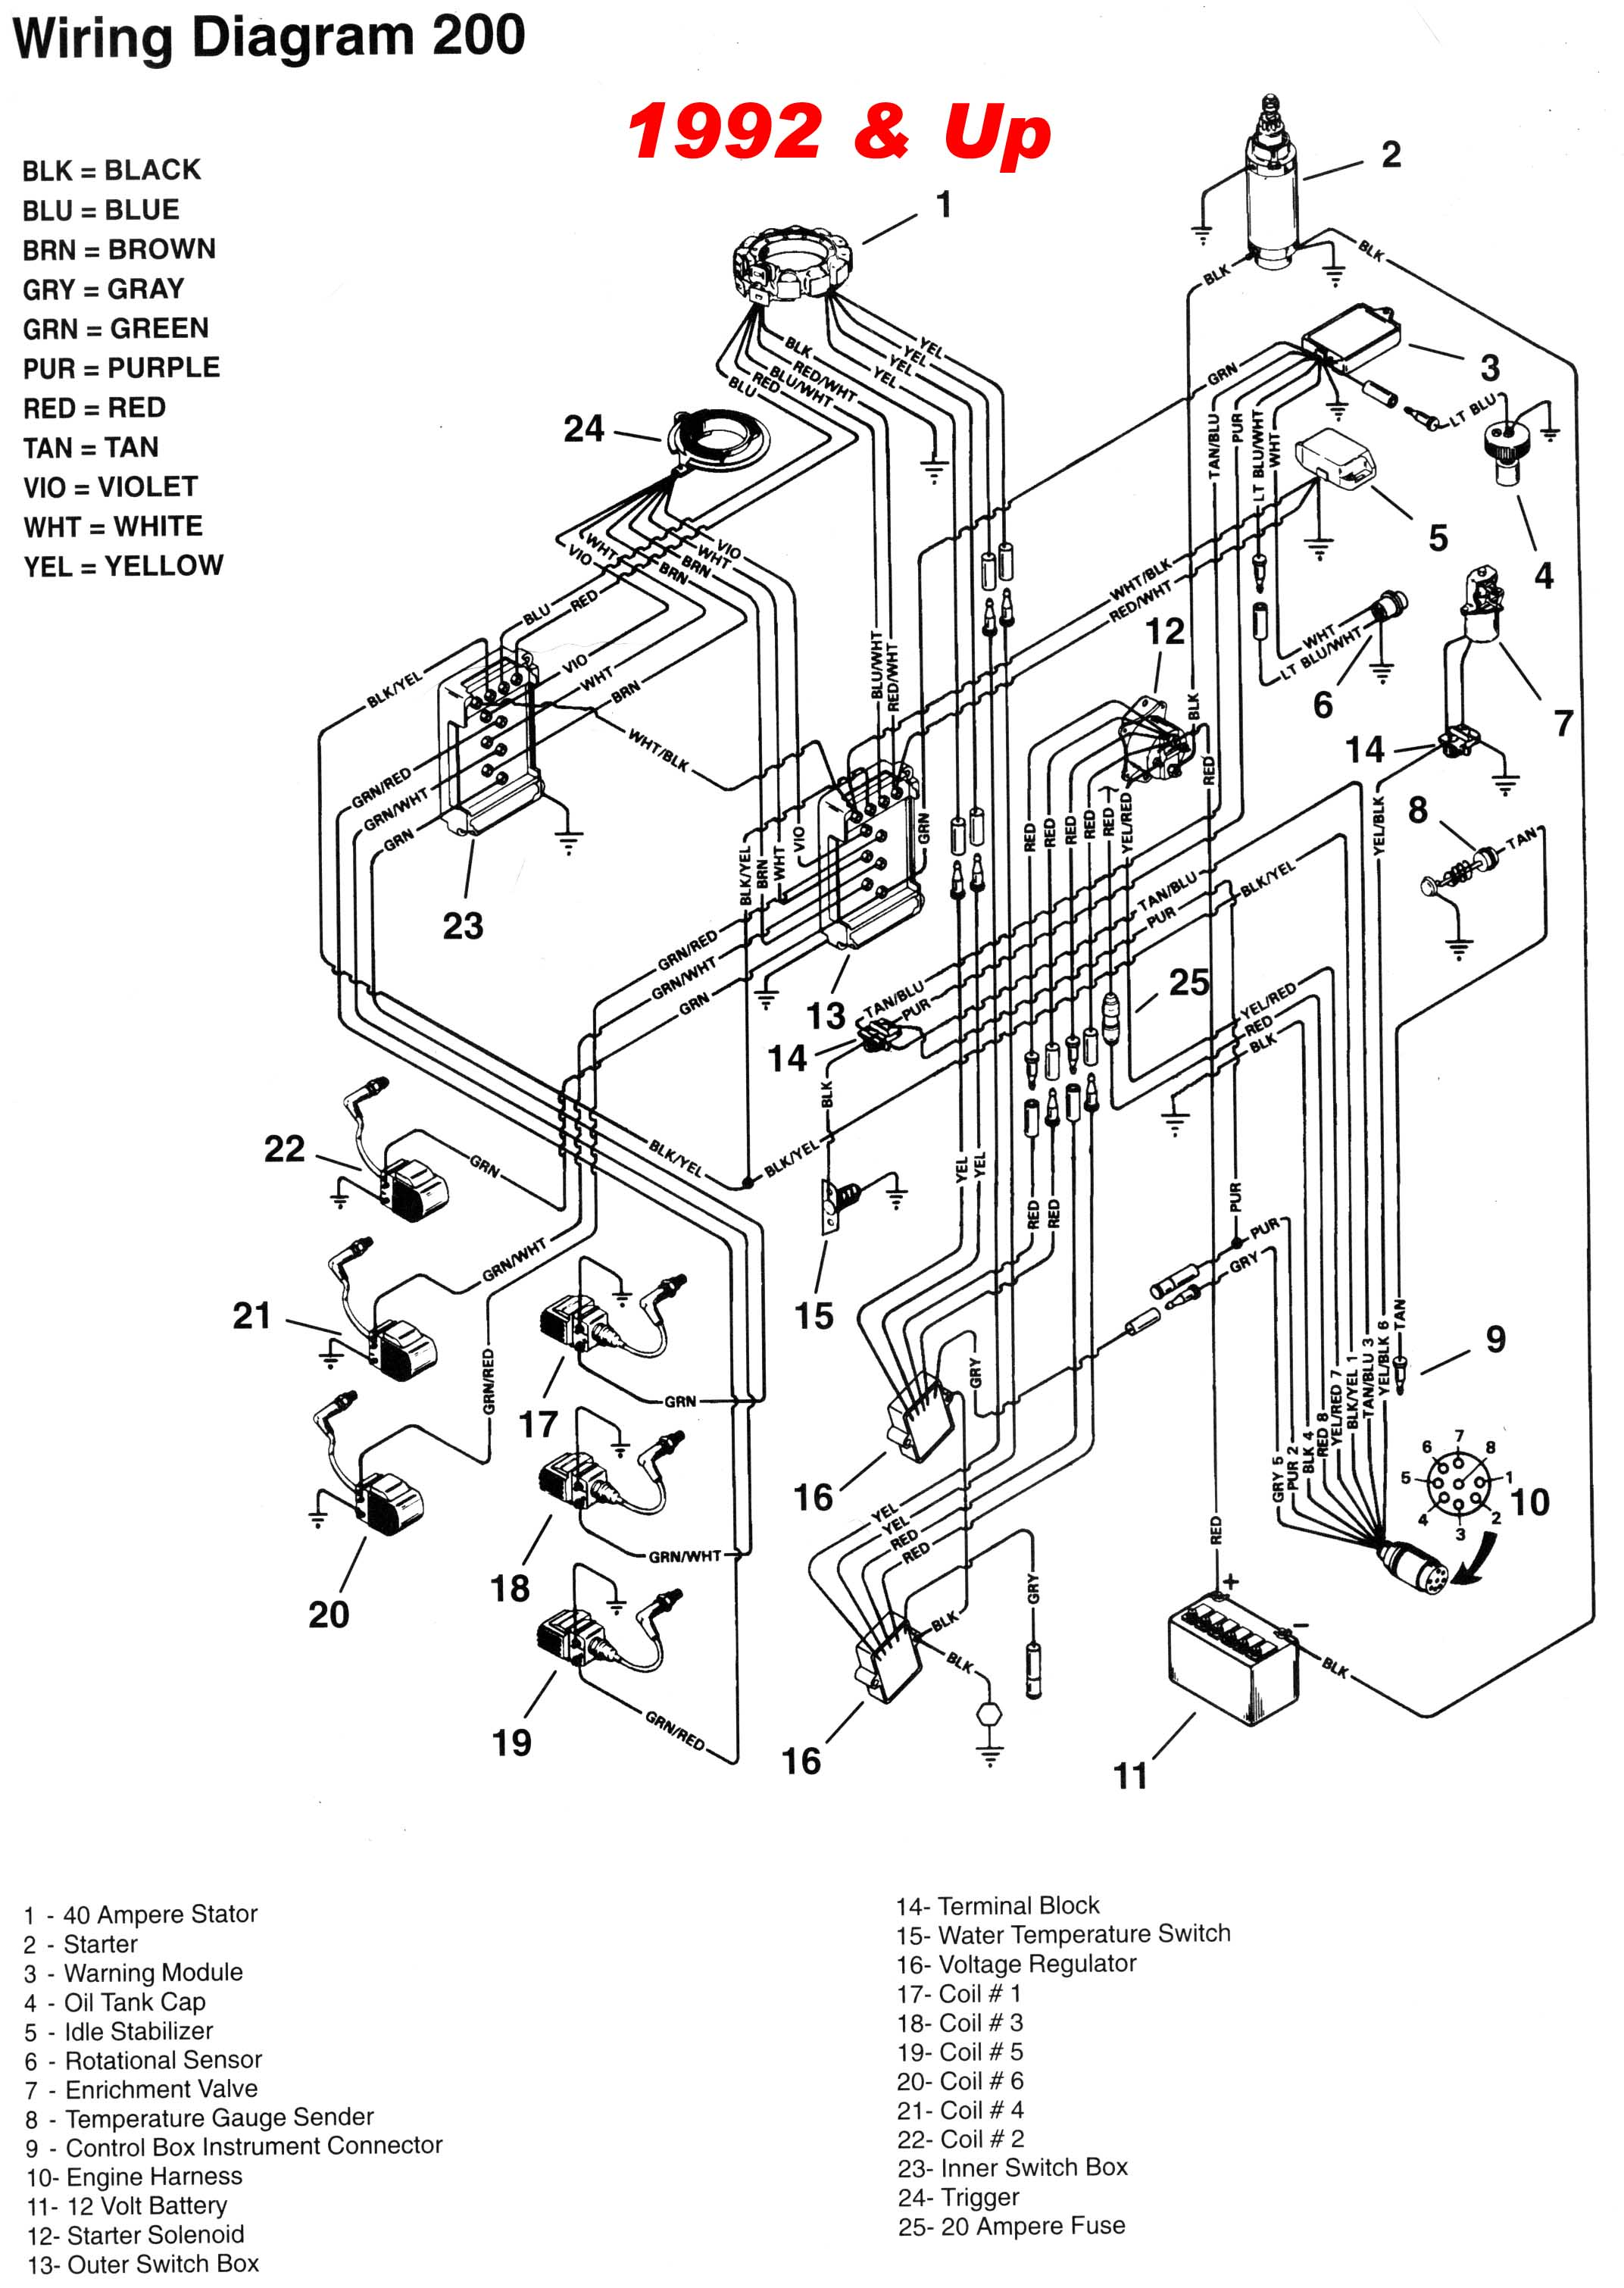 Wiring Harness For 1949 Mercury 31 Diagram Images Ford Truck On 1948 F1 92up 200 1940 Headlight Switch